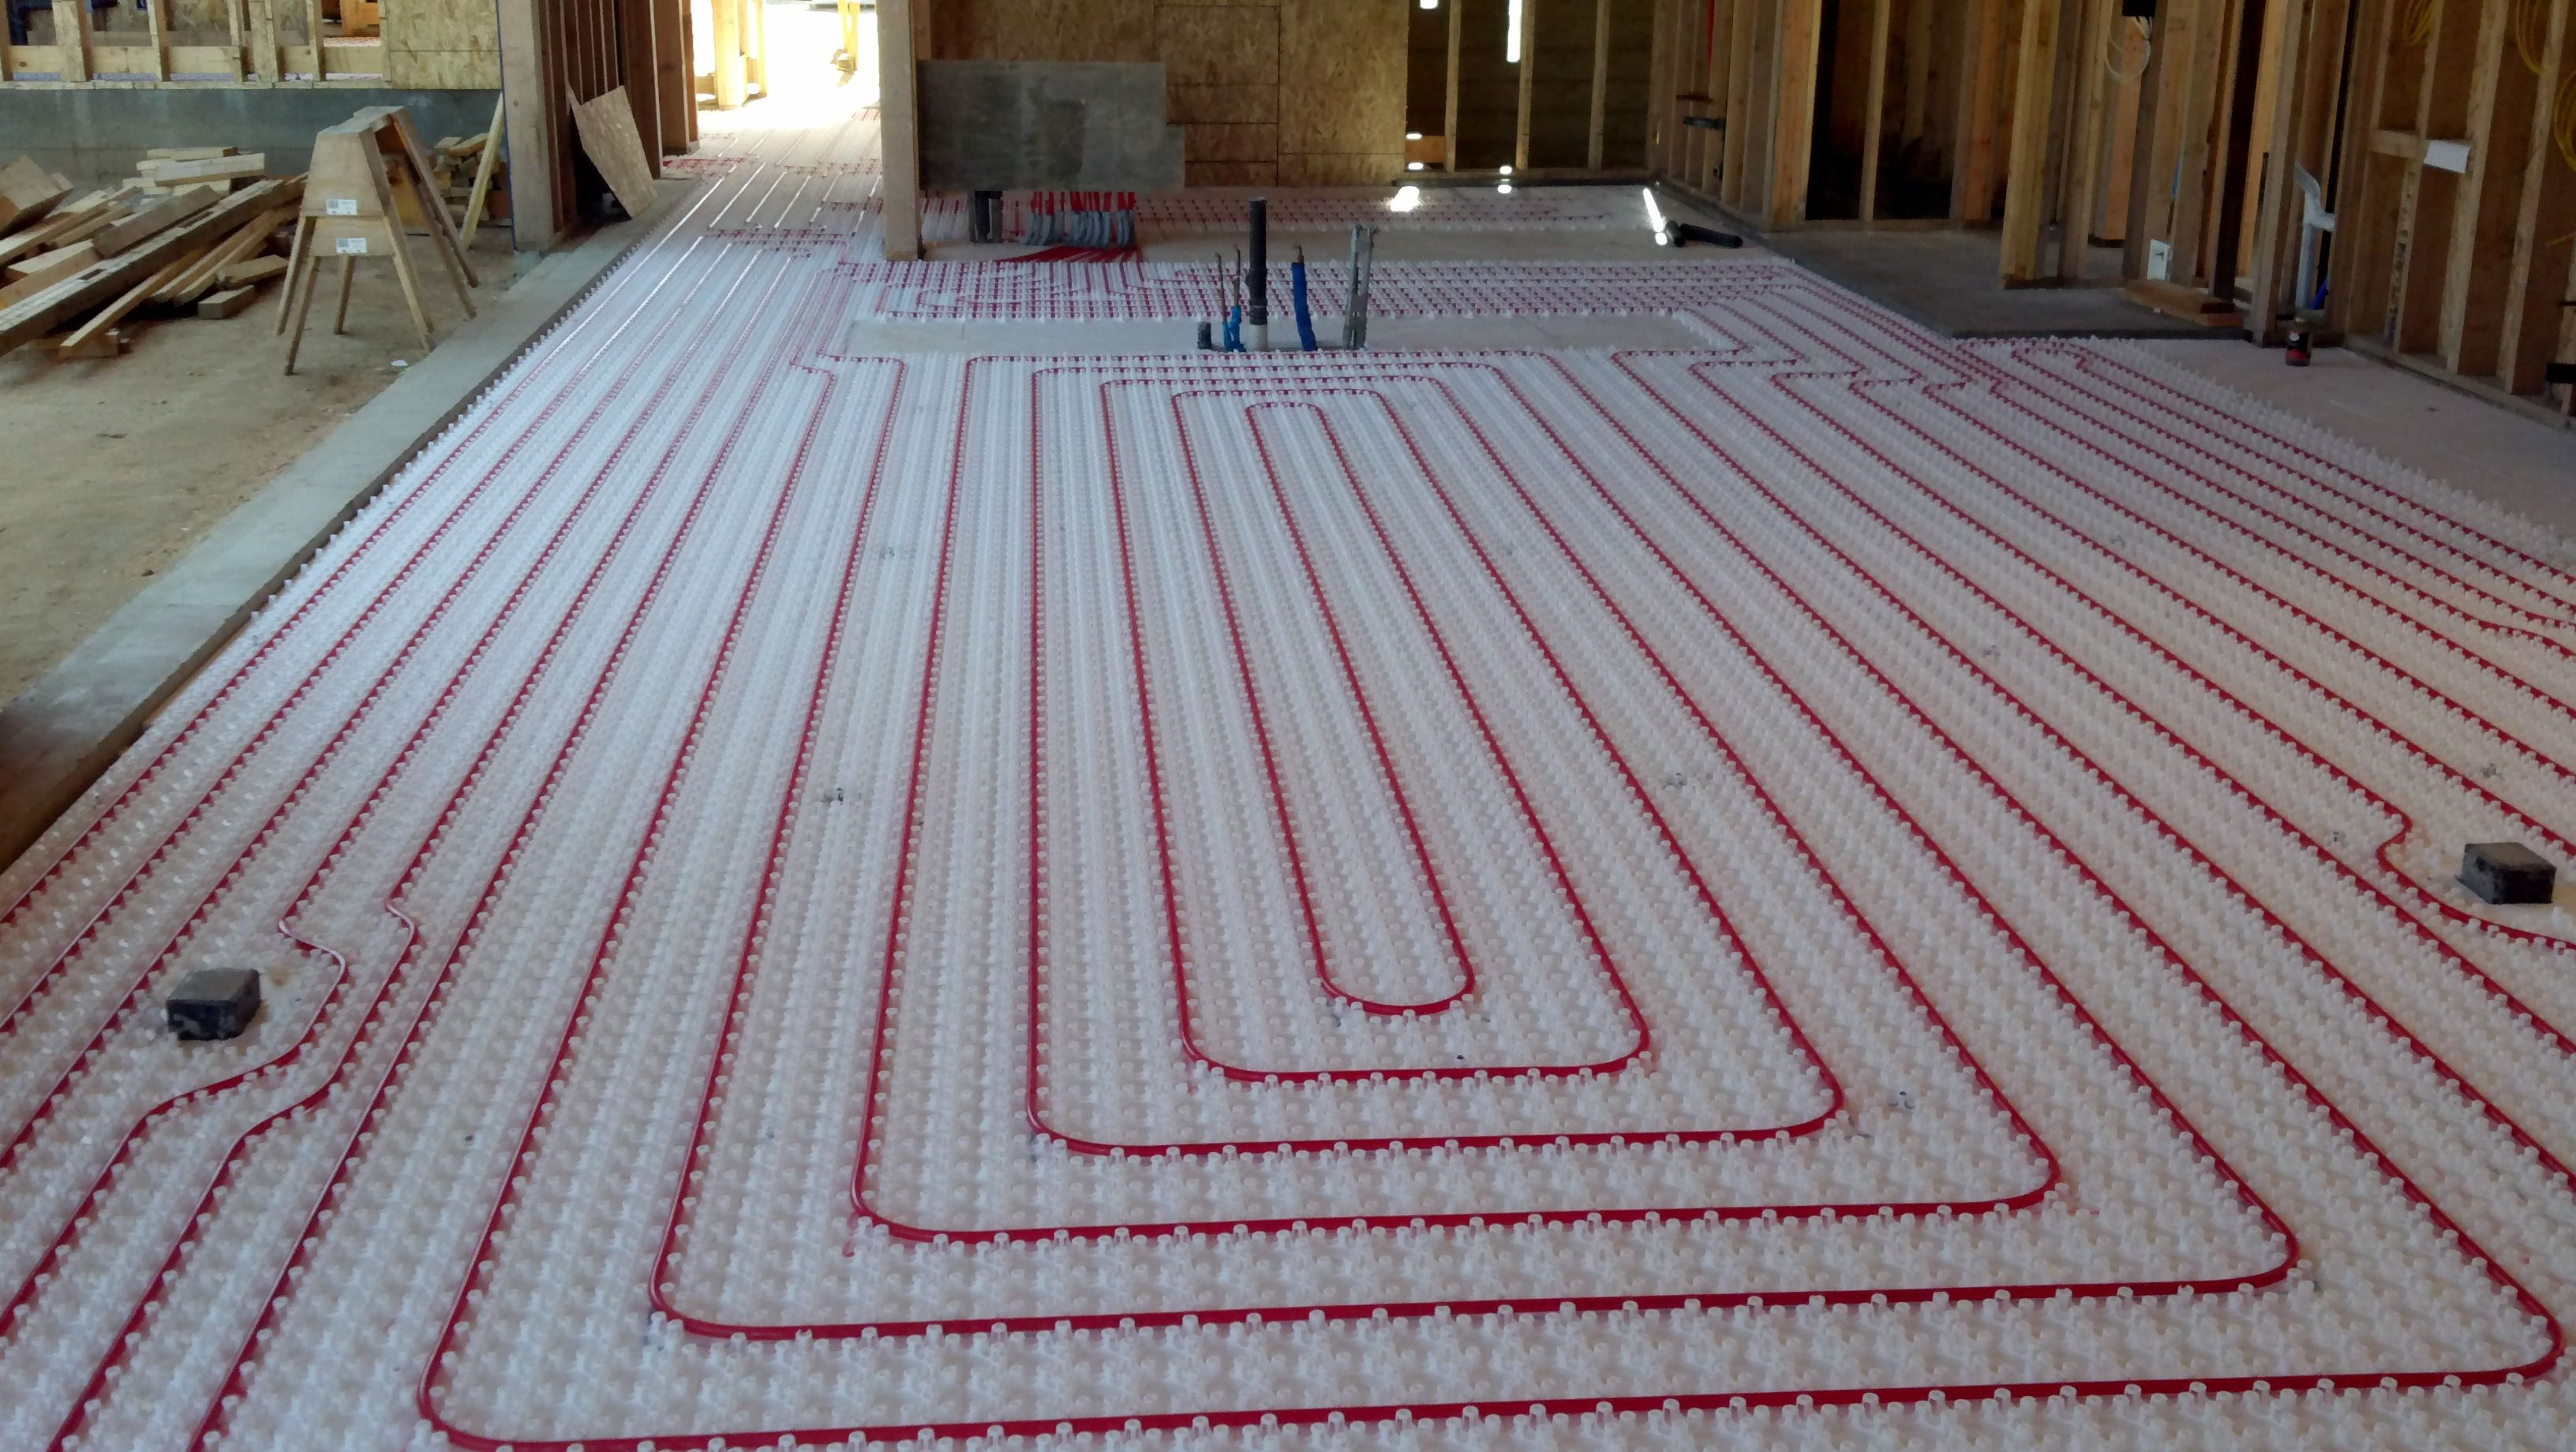 In Floor Heating Can We Use On Concrete Which Is Better